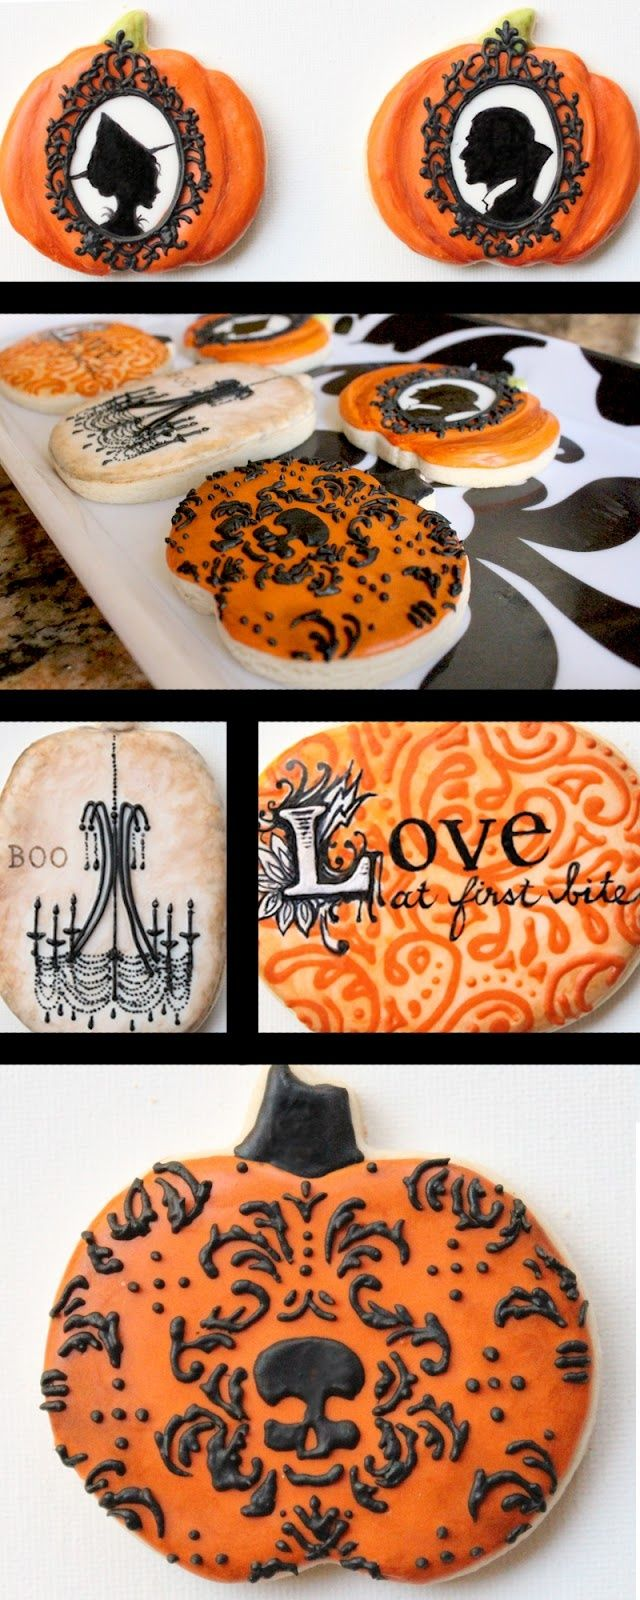 Amazing cookies by this artist!! Arty McGoo Royal Icing Cookies - Halloween Decorated Cookies